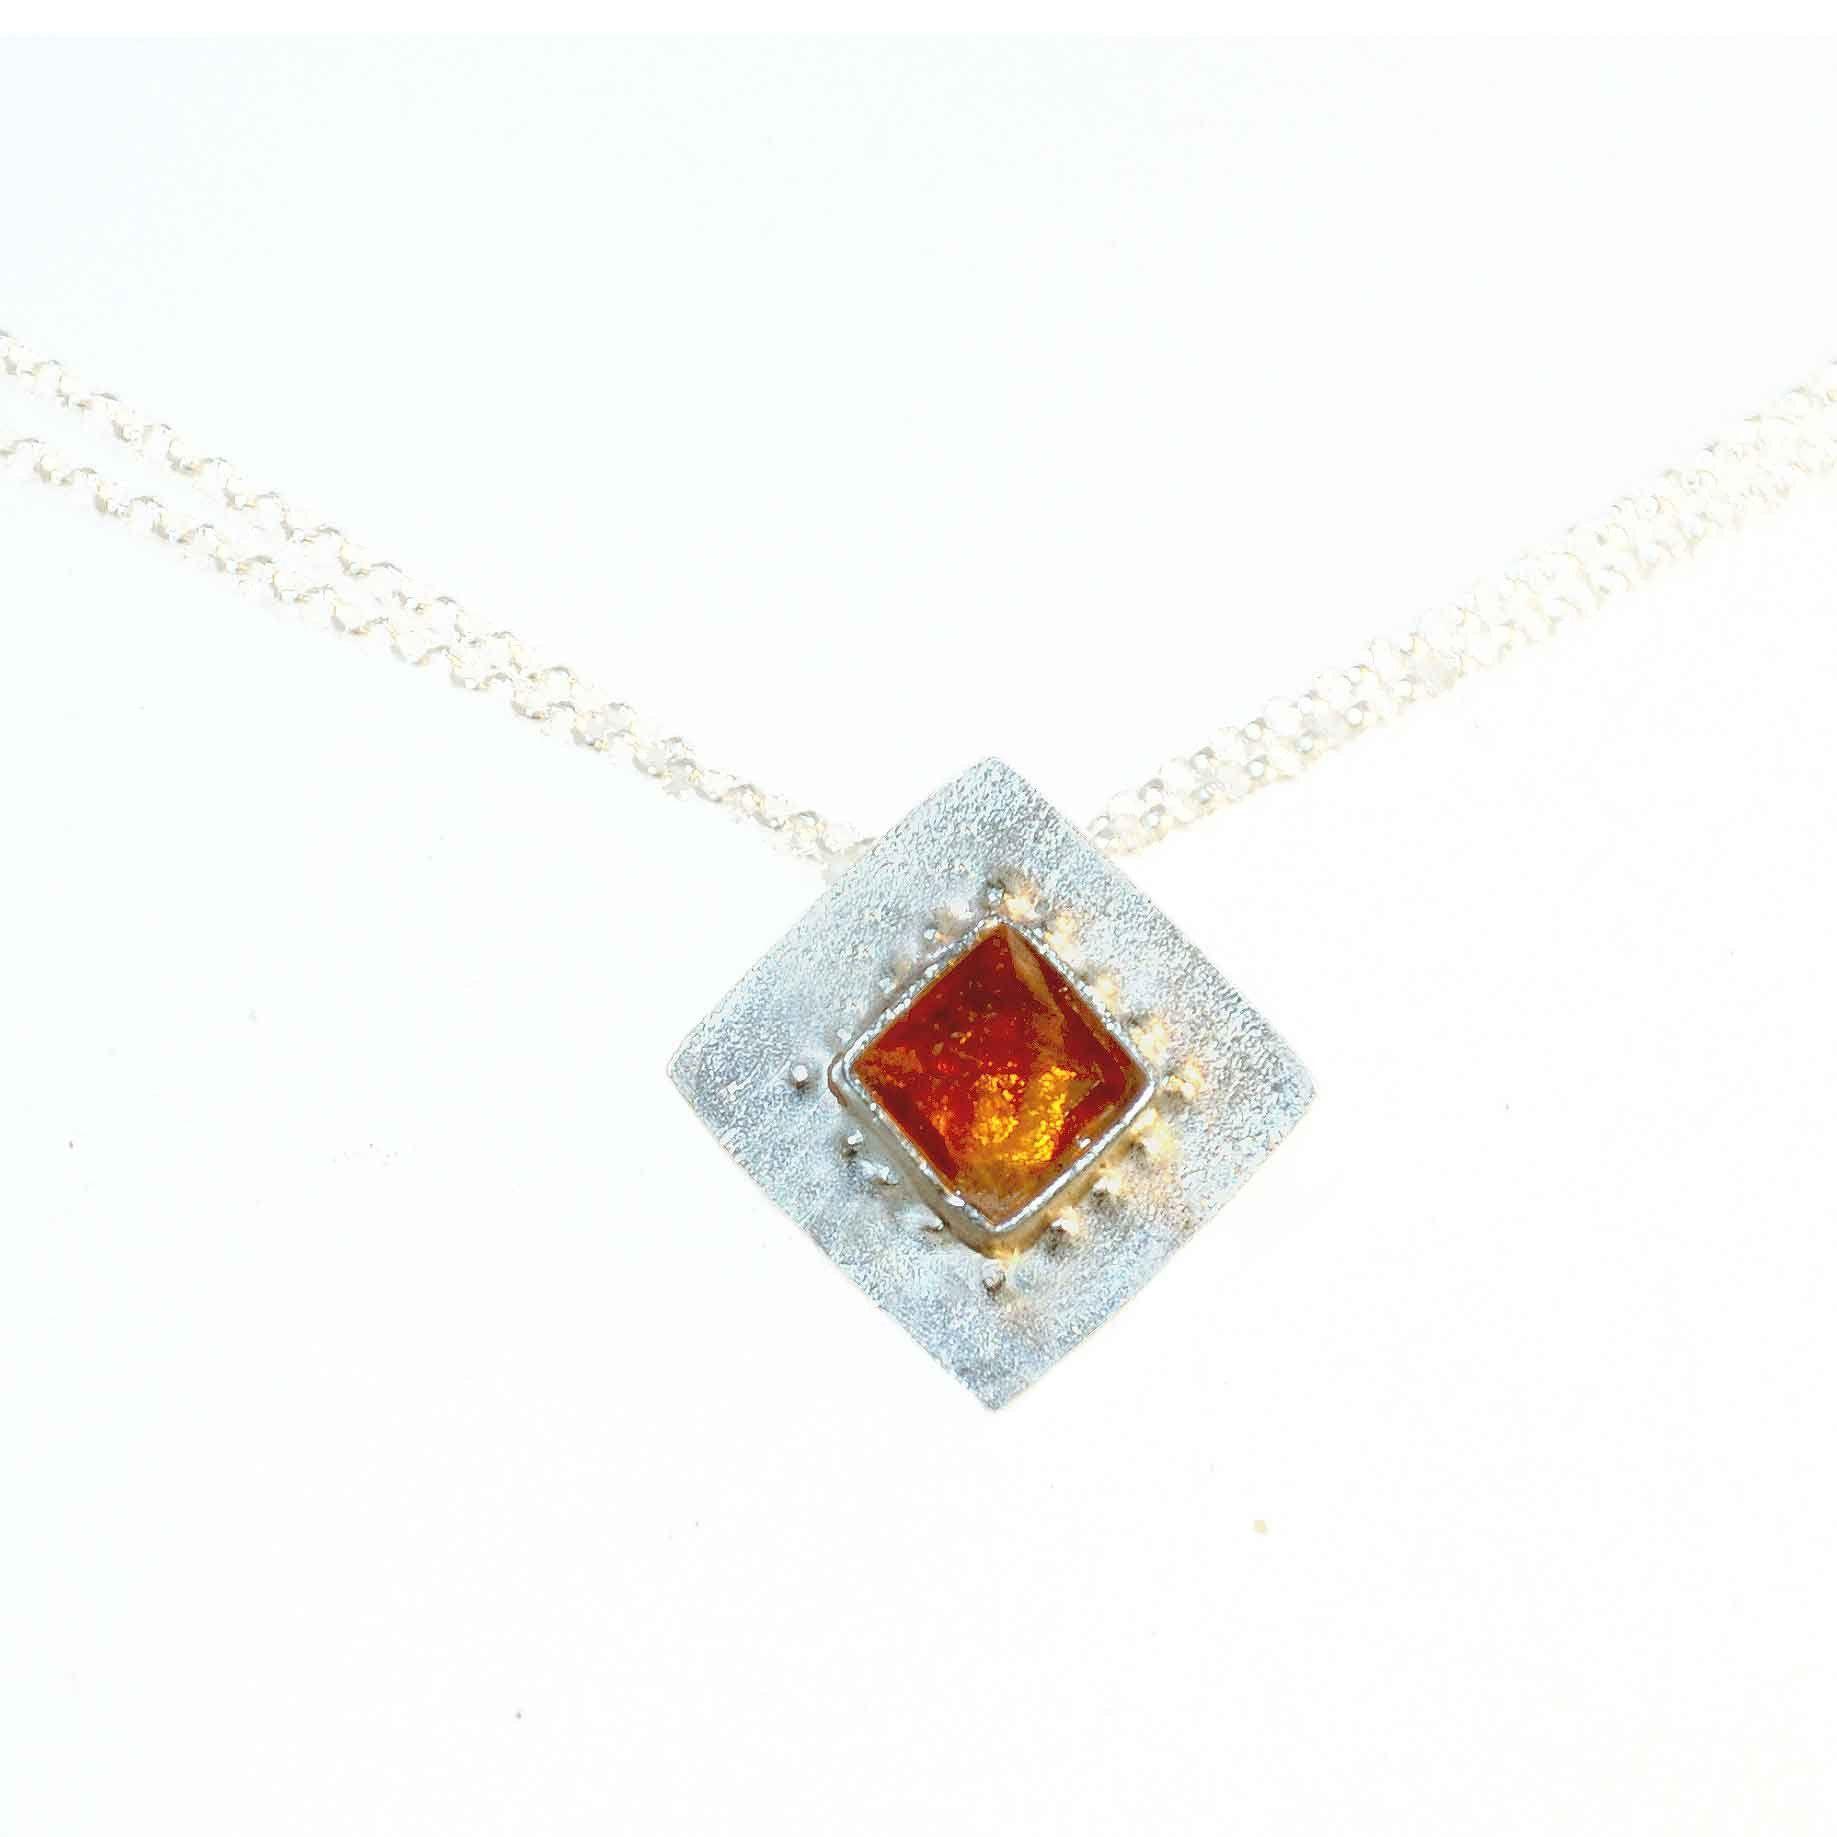 Shellie David Sterling Silver and Citrine Necklace Artistic Artisan